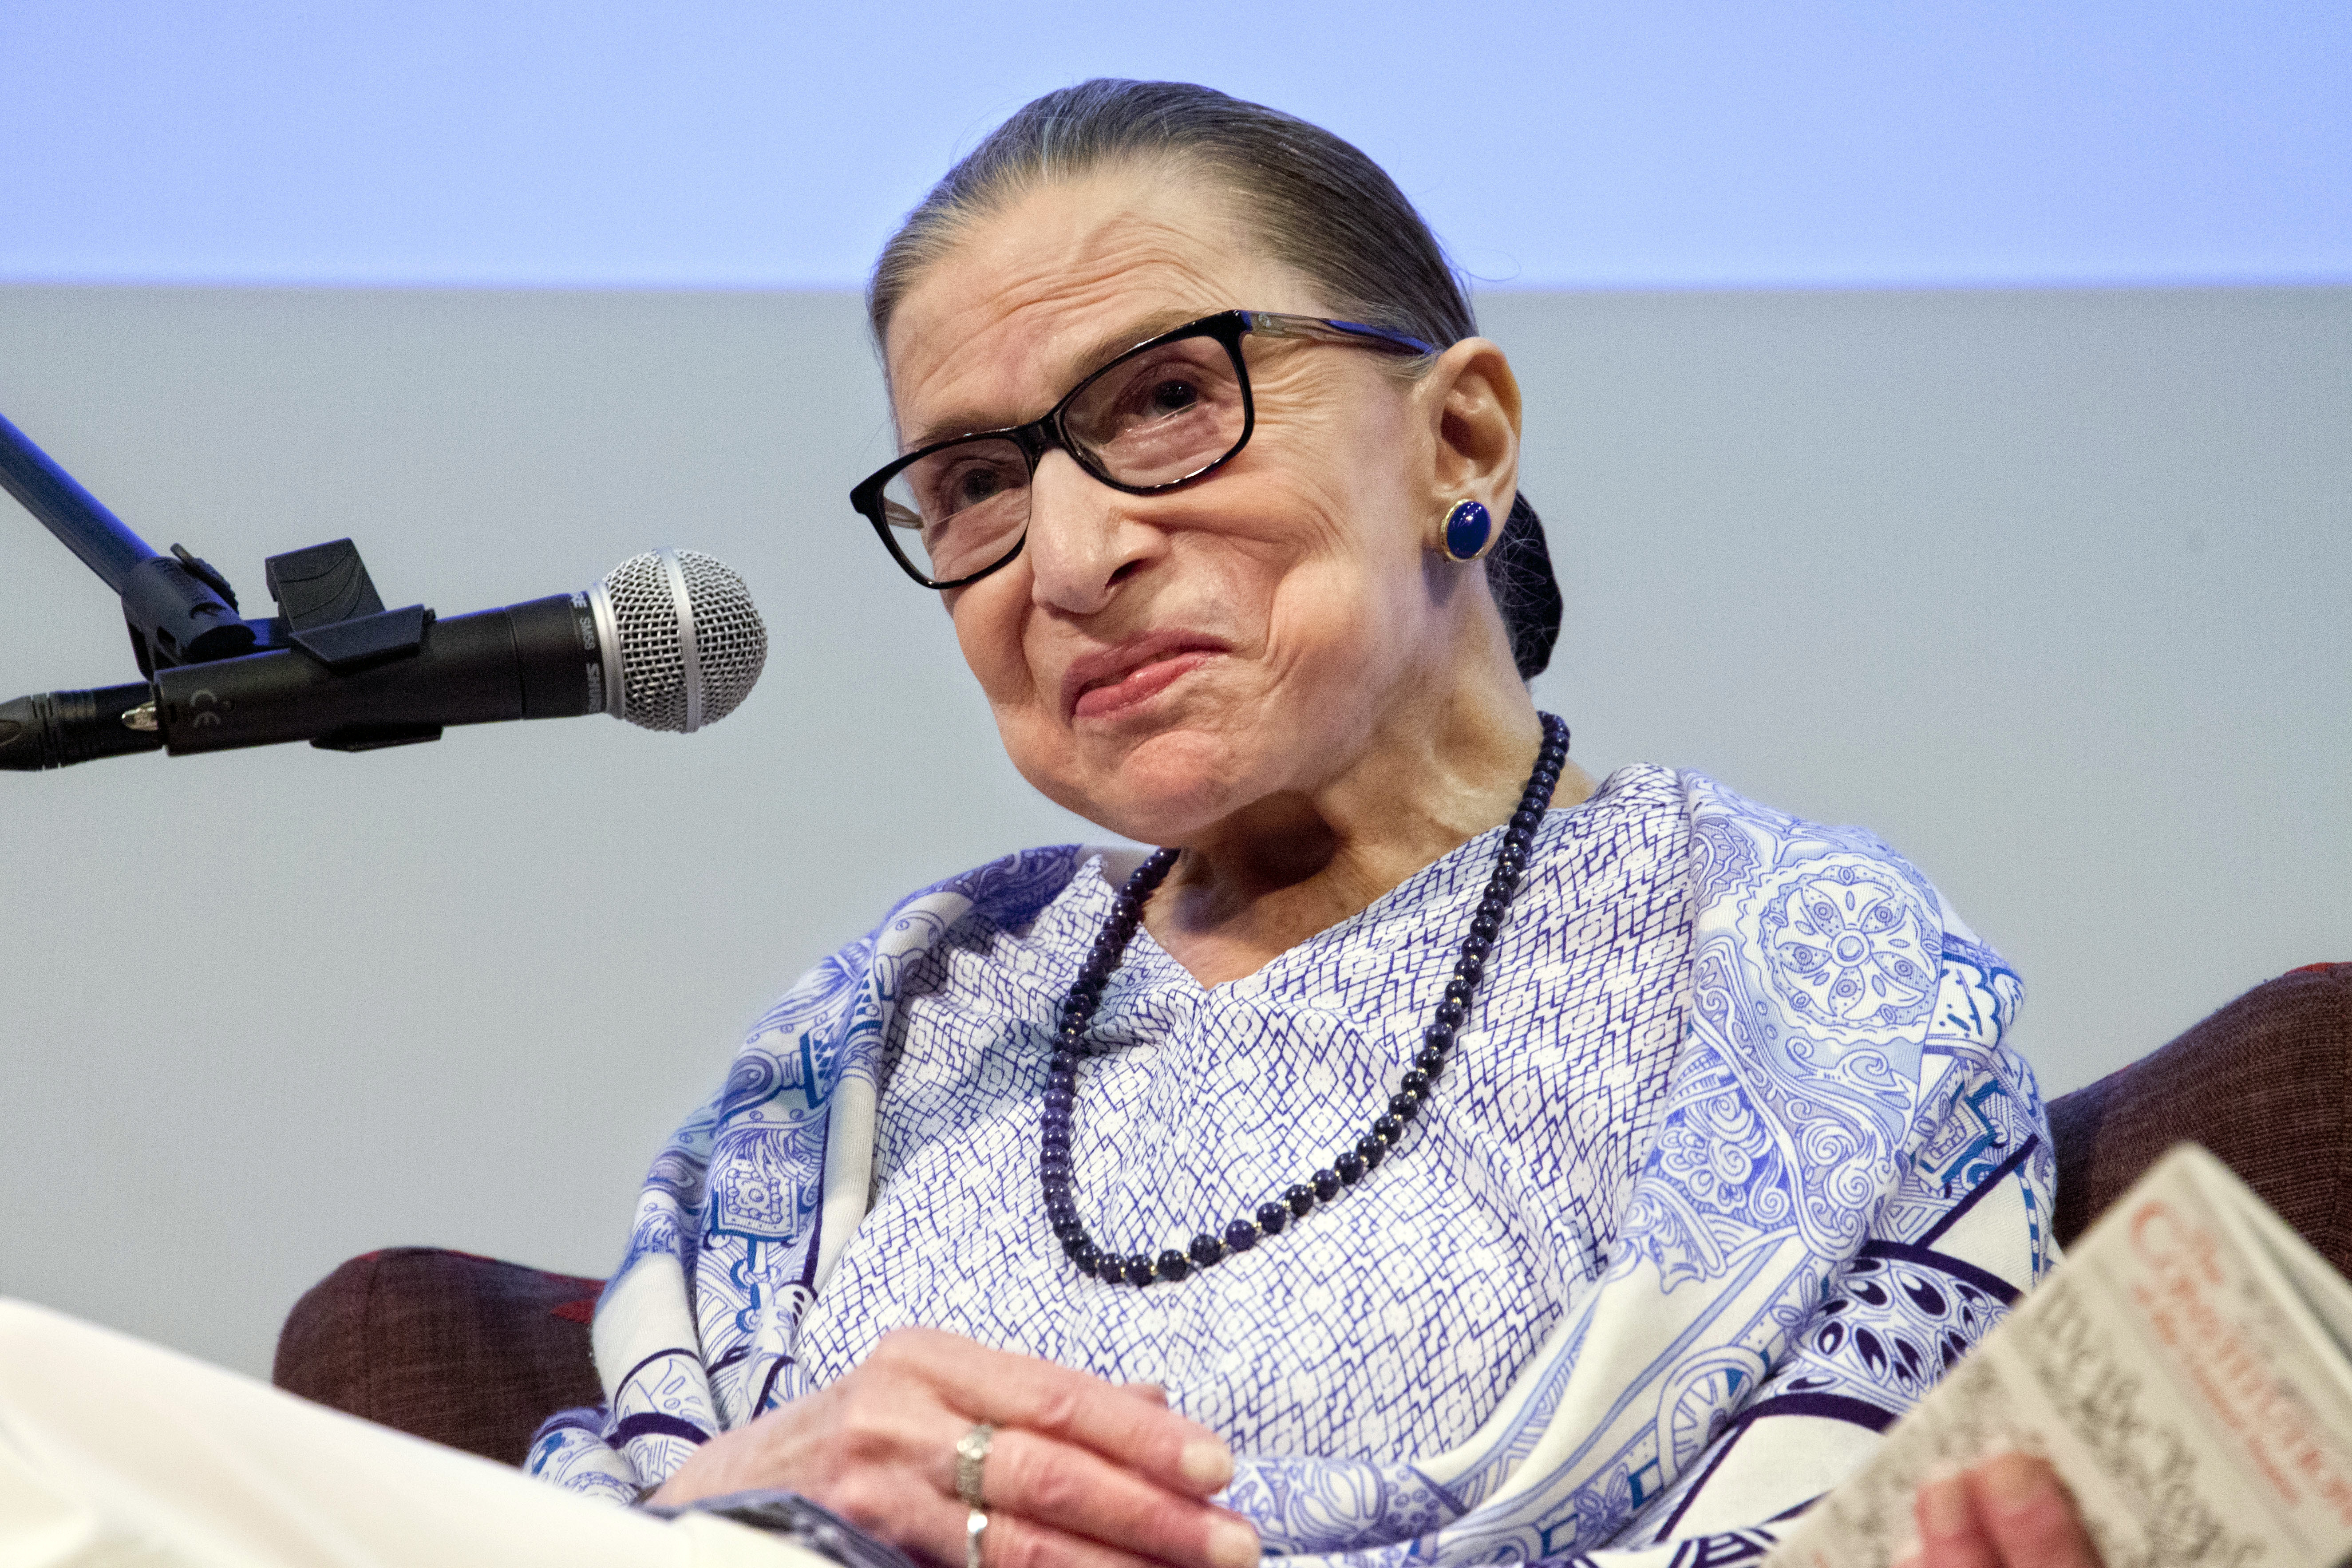 """U.S. Opera Scene Pays Tribute To Ruth Bader Ginsburg, Celebrates Supreme Court Justice's """"Tireless Devotion To The Ideals Of Our Country"""""""